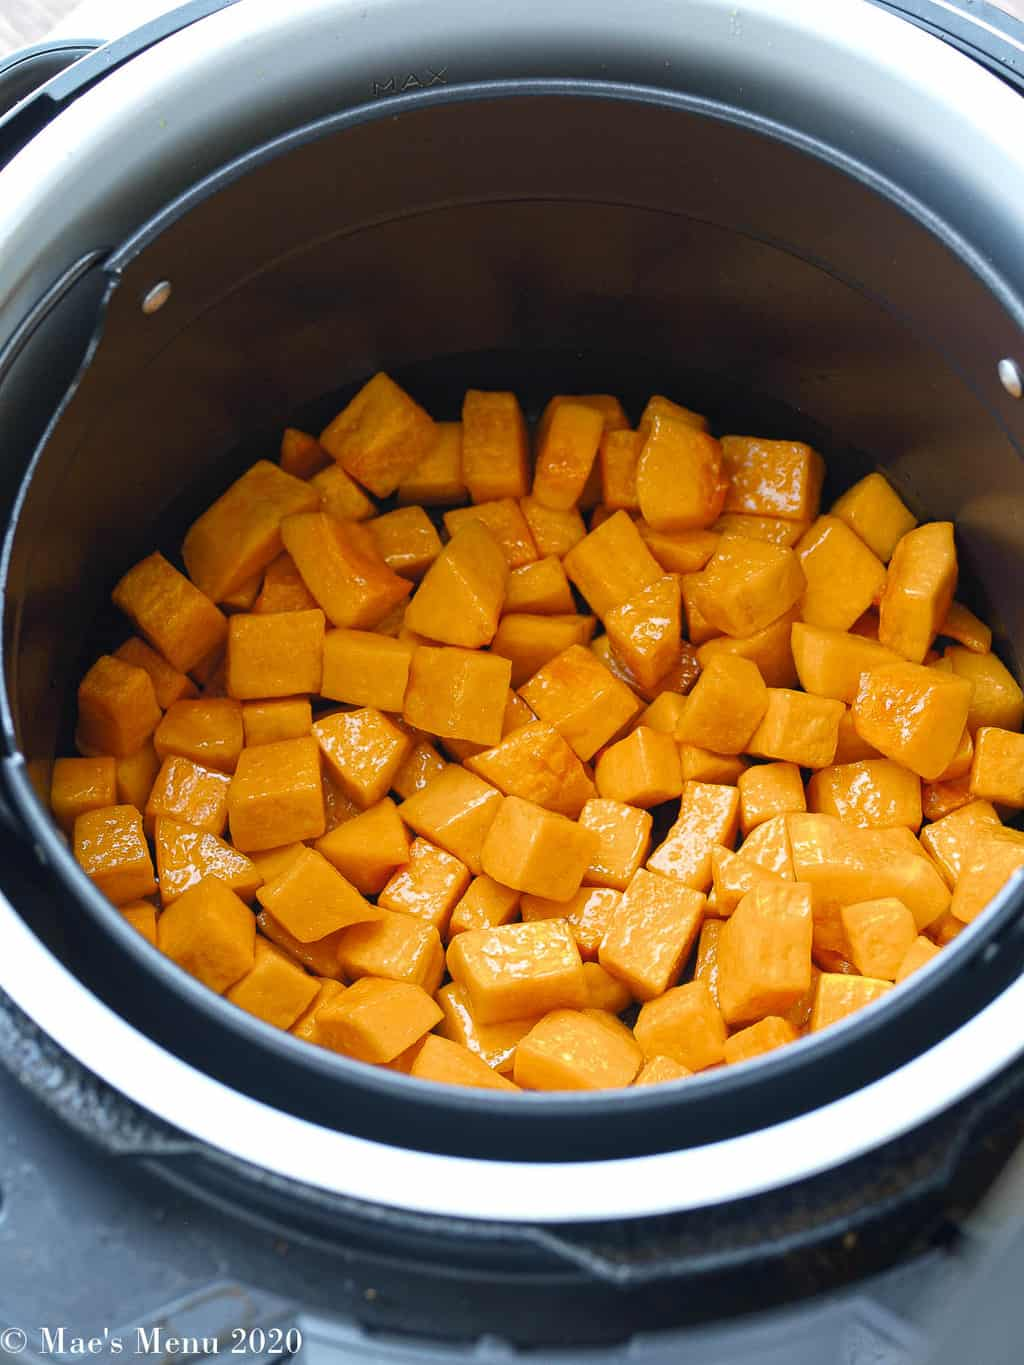 Butternut squash in the basket of an air fryer